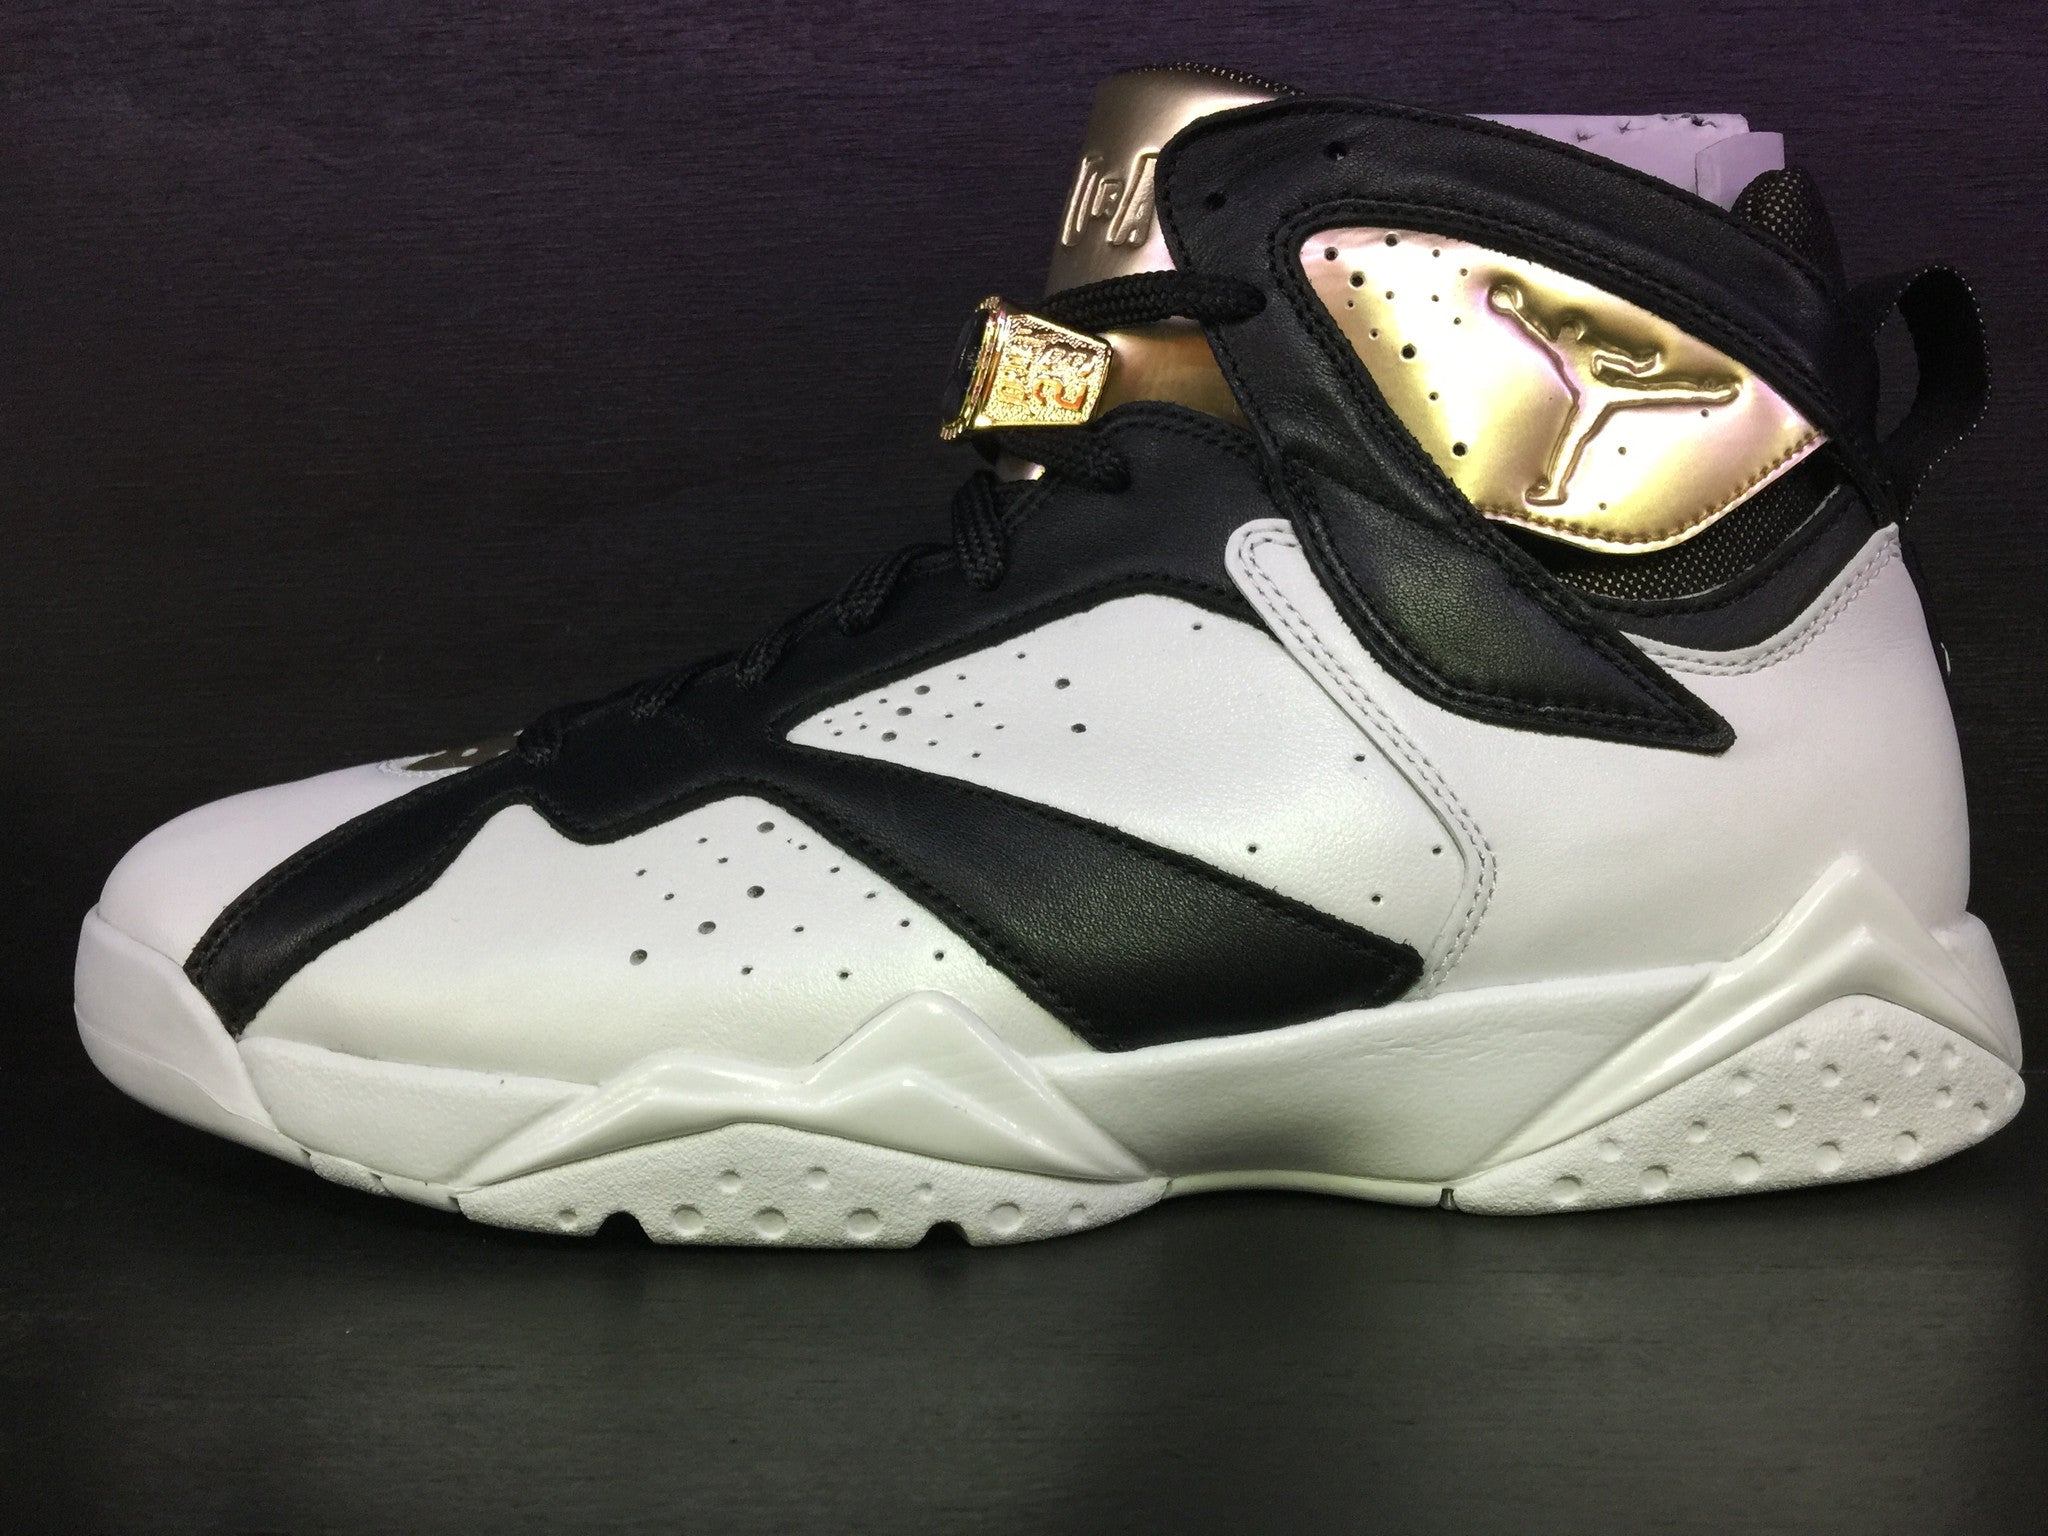 Air Jordan 7 Retro C&C 'Champagne'